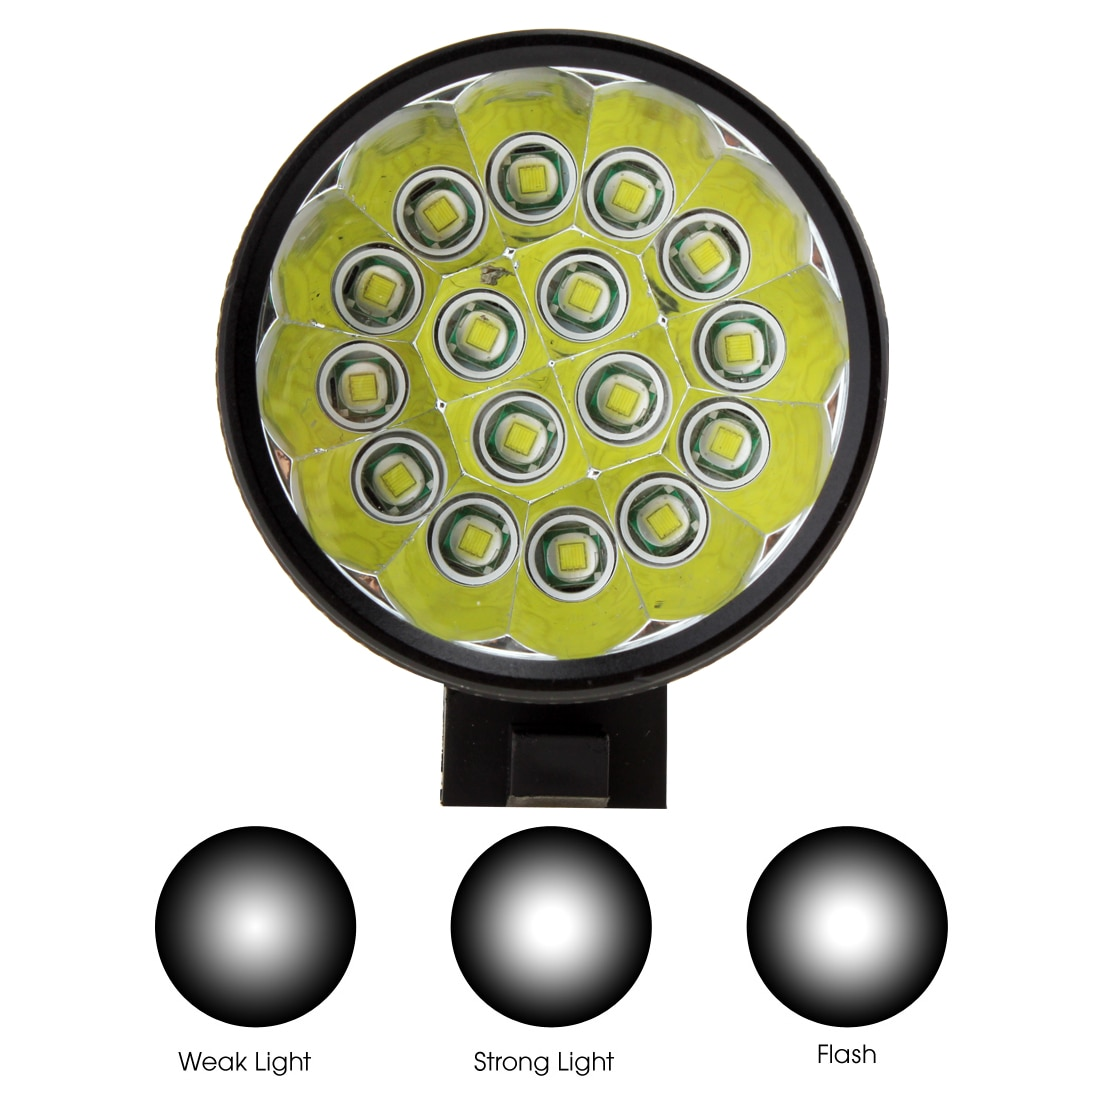 SecurityIng Bicycle Headlights  XM-L T6 LED Bicycle Lamp Bike Light Headlight Cycling Torch with 8.4V 6400mAh Battery Set enlarge